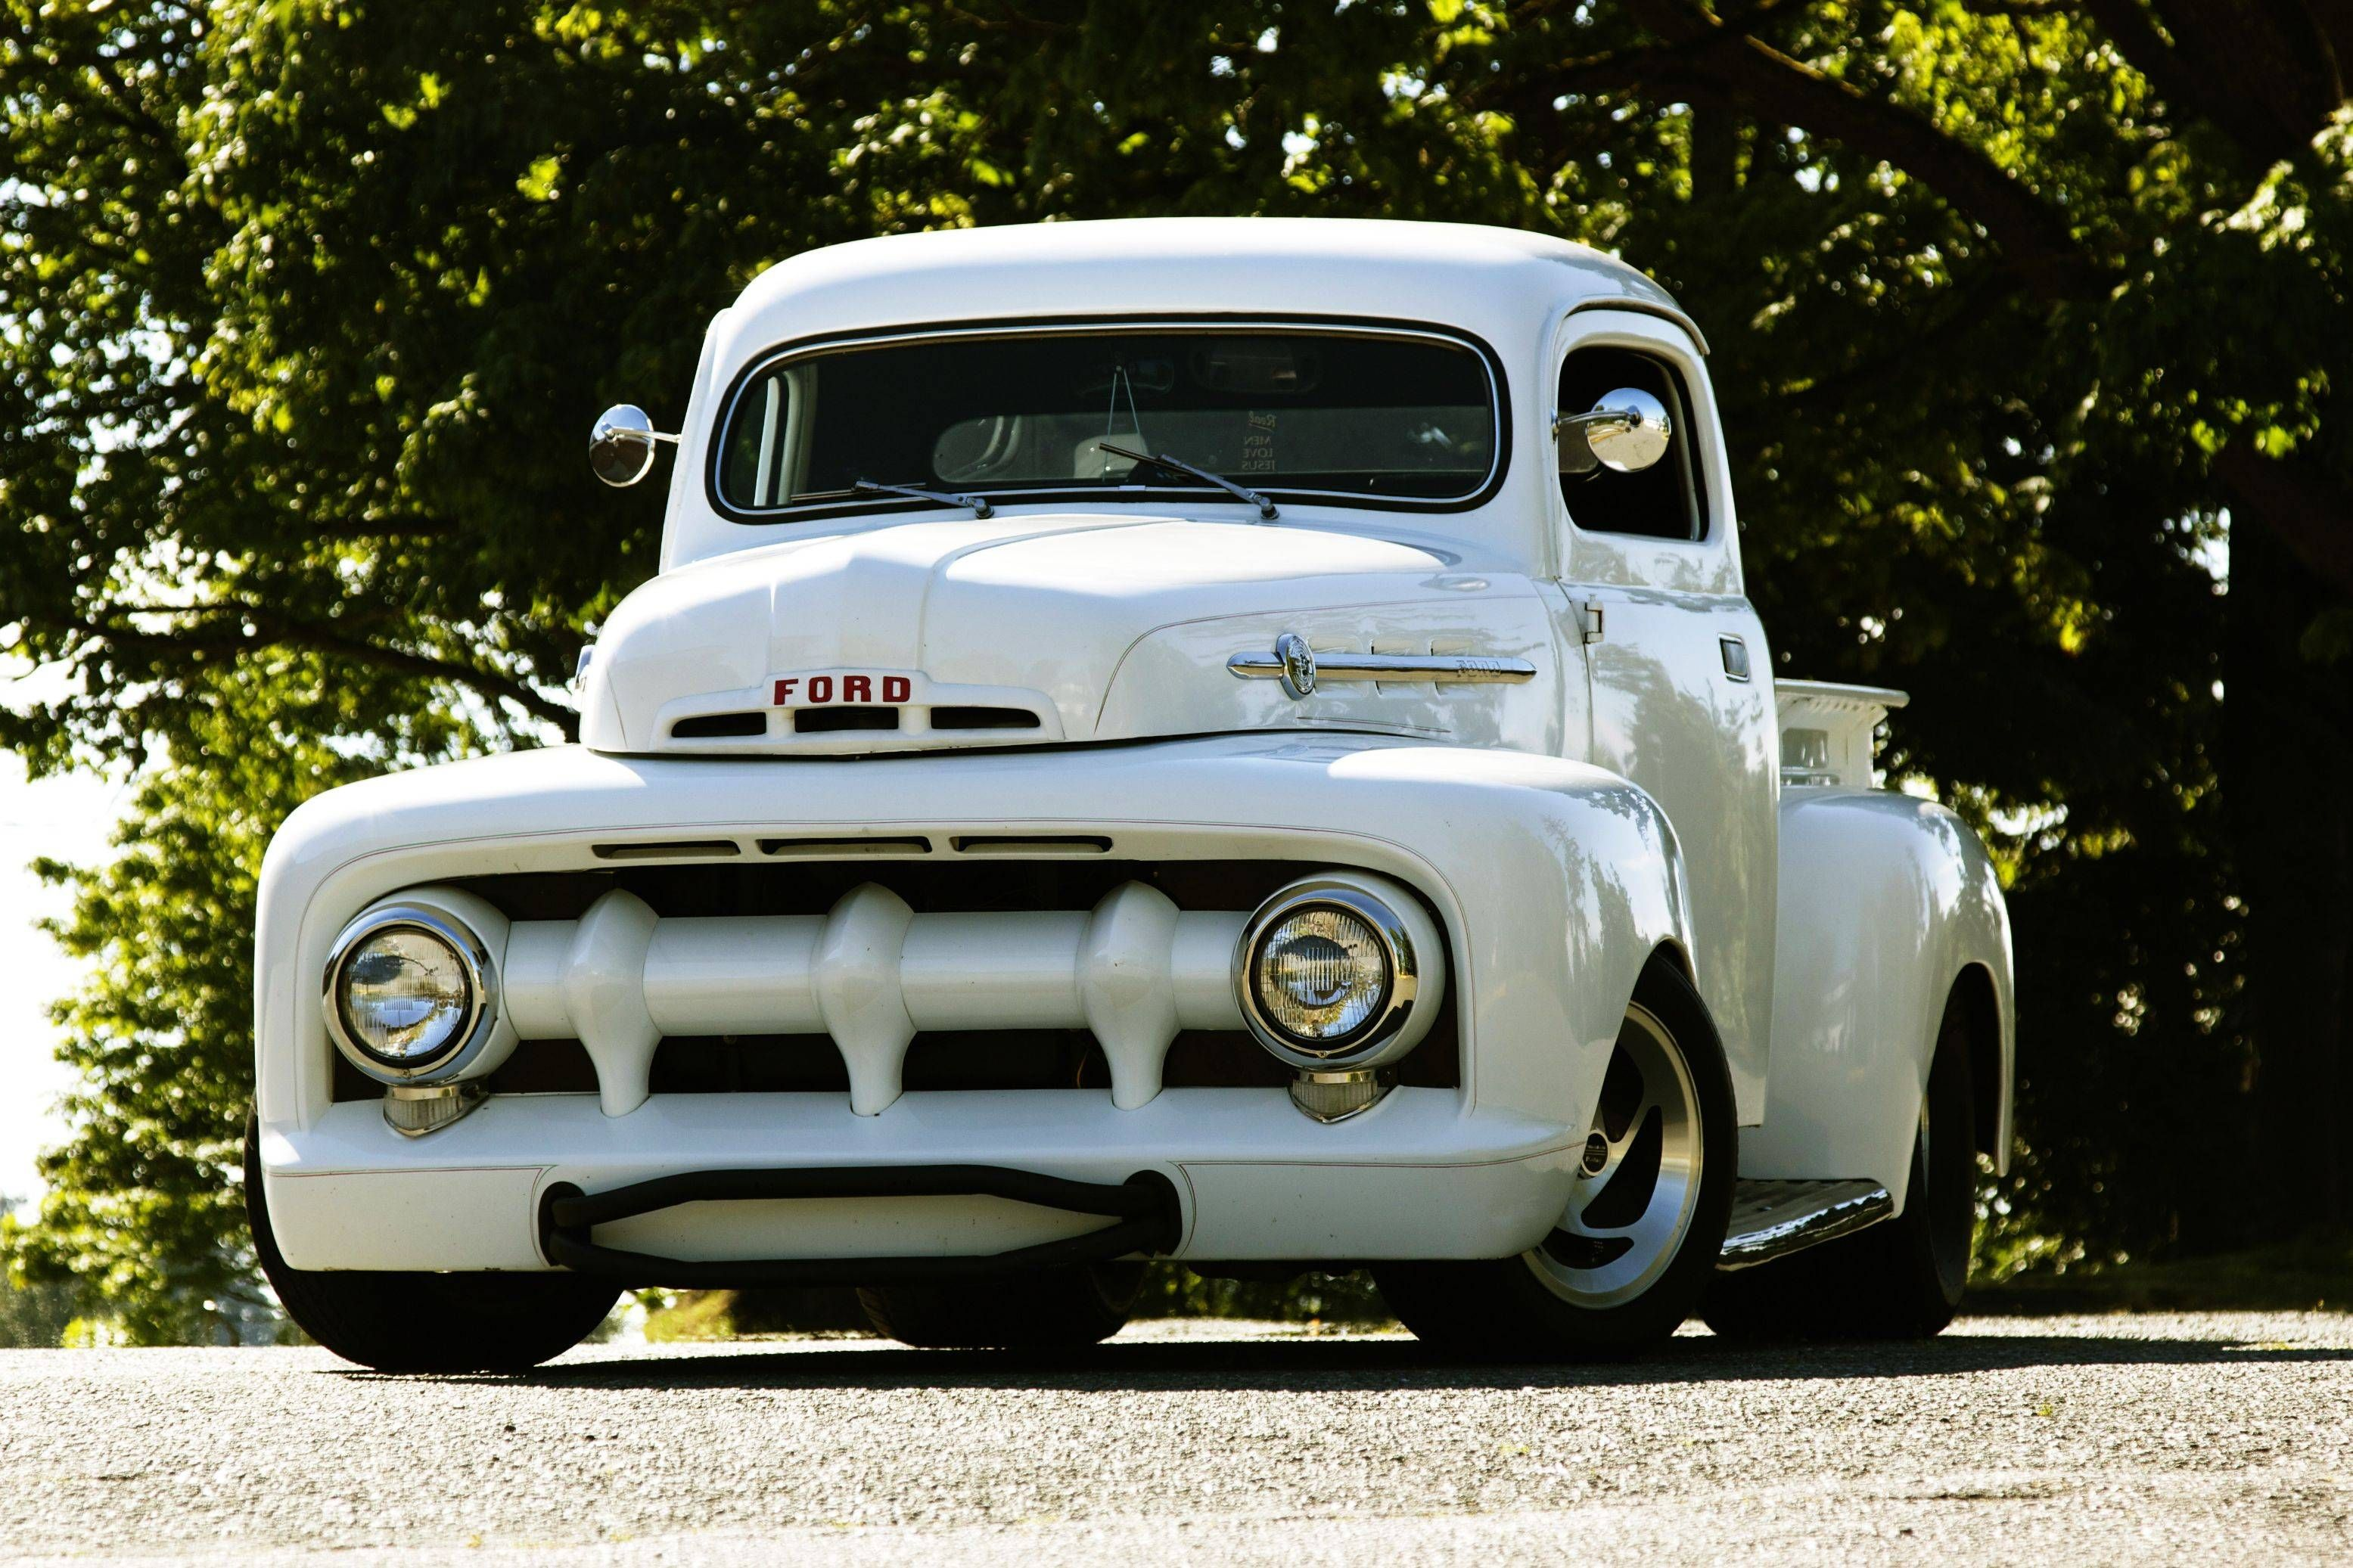 1955 chevrolet hot rod truck pictures to pin on pinterest - Afternoon Drive Truck Yeah 29 Photos